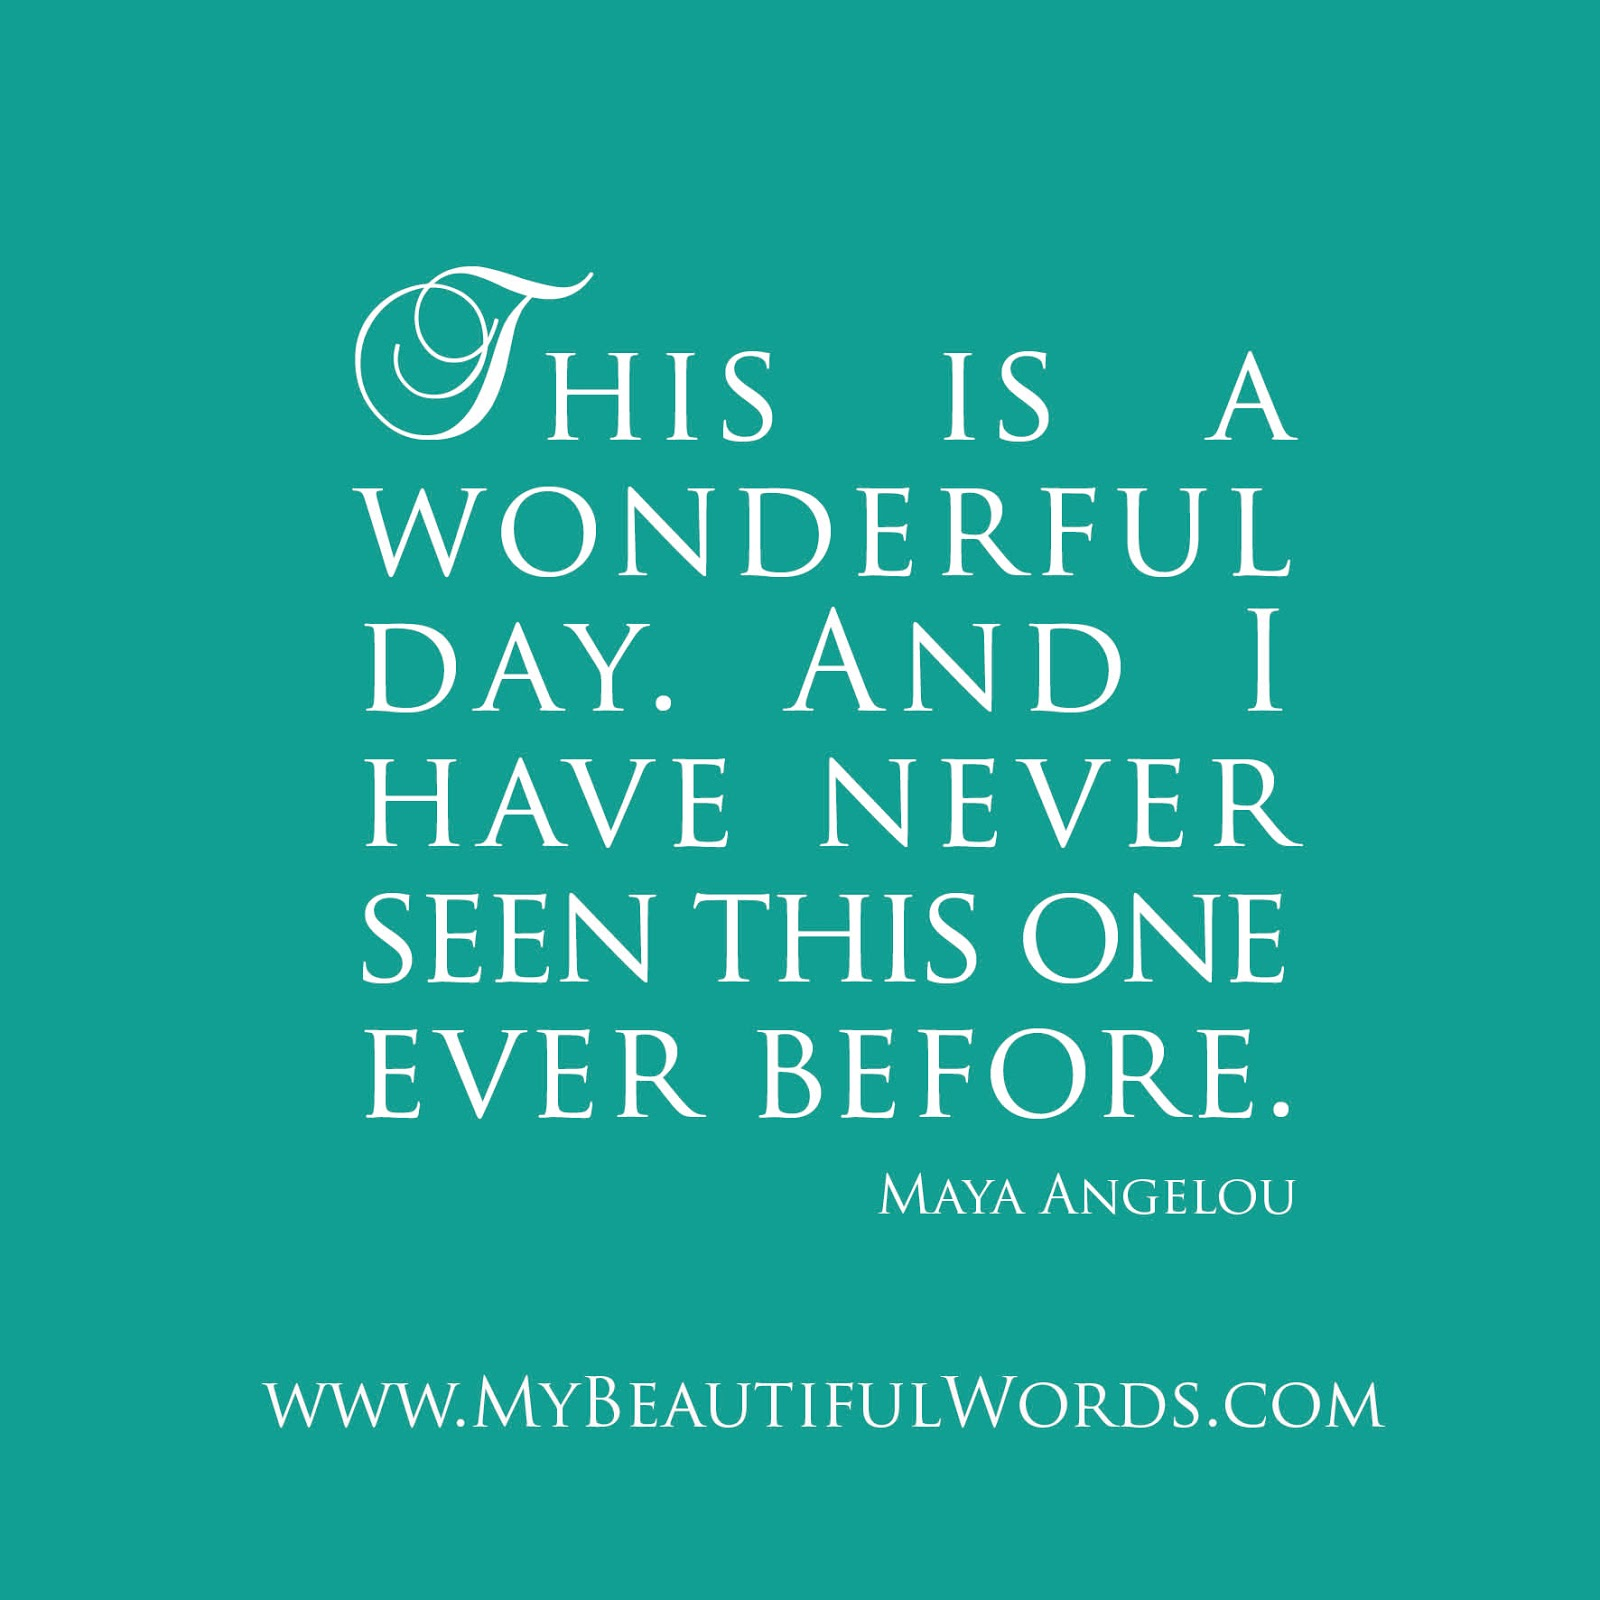 Maya Angelou Is This a Wonderful Day